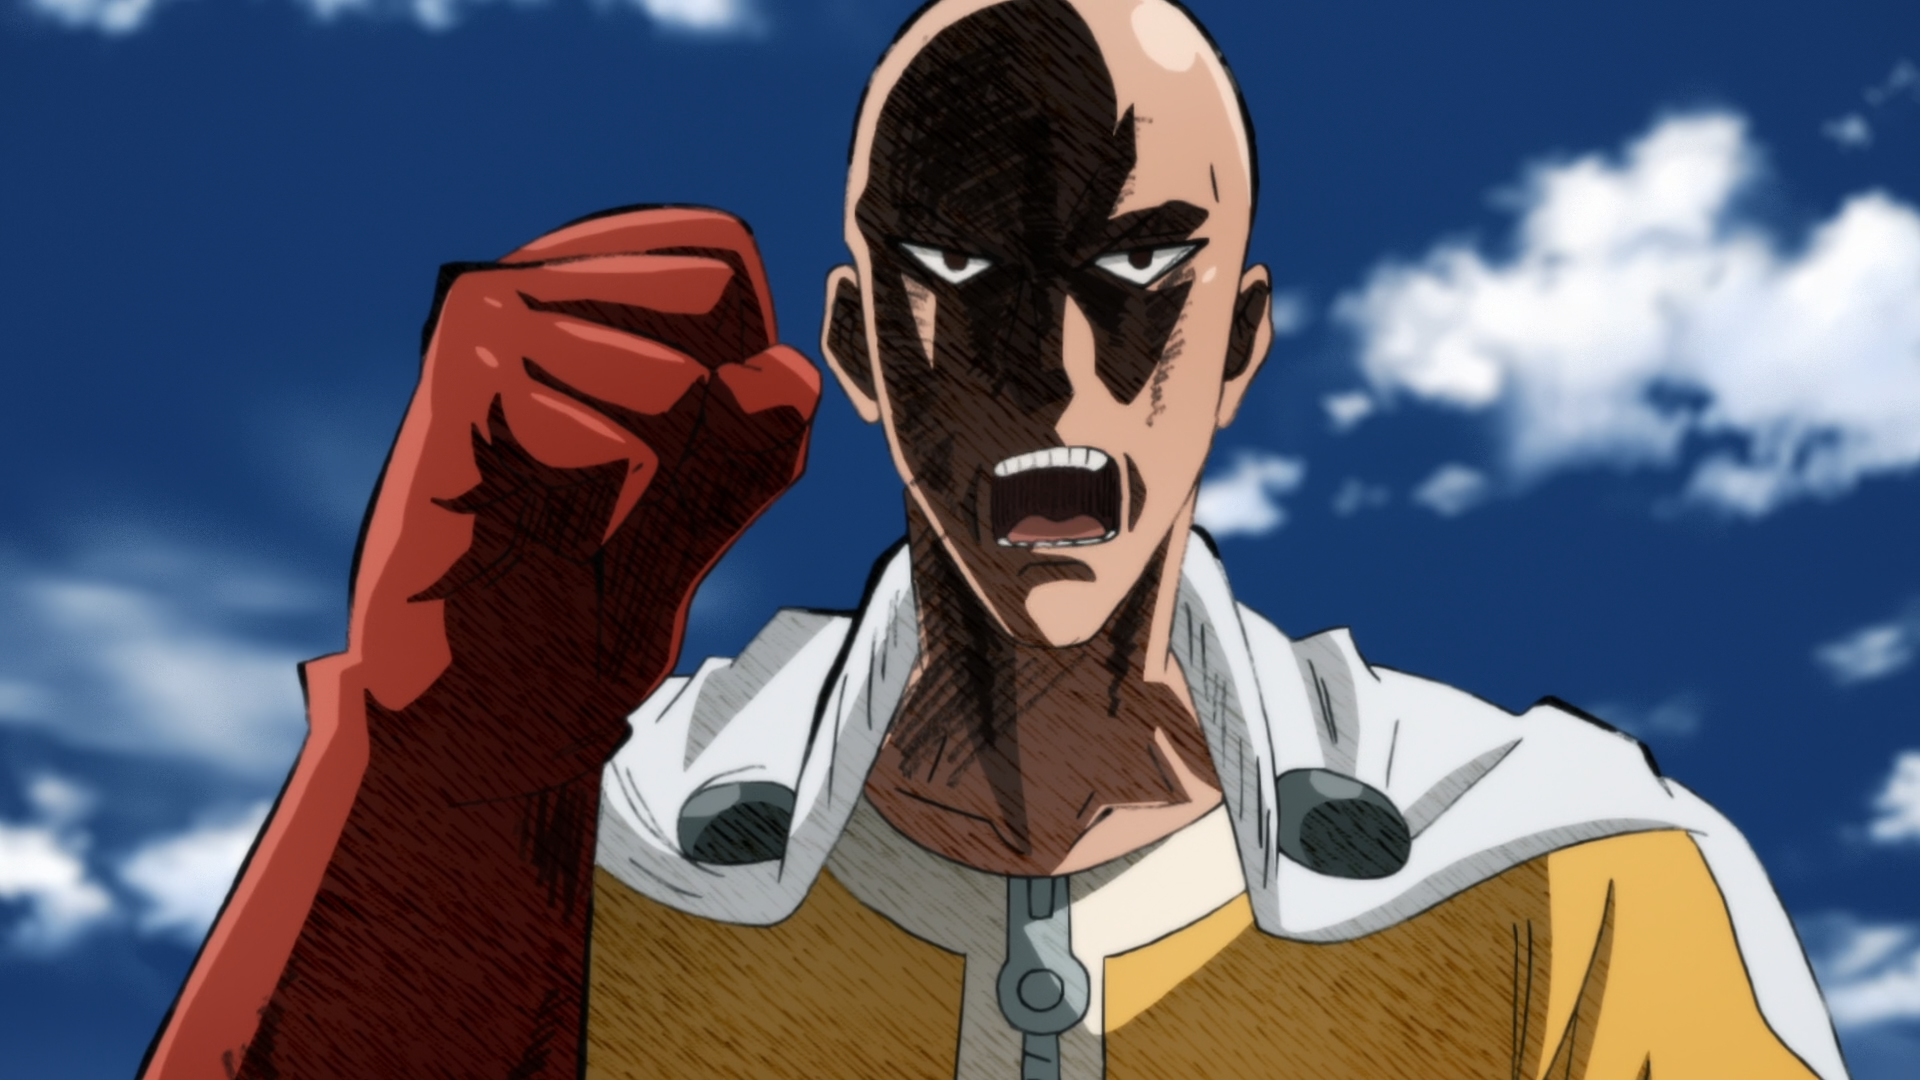 Saitama Looking Amazing In The New Ova R Onepunchman One Punch Man Know Your Meme